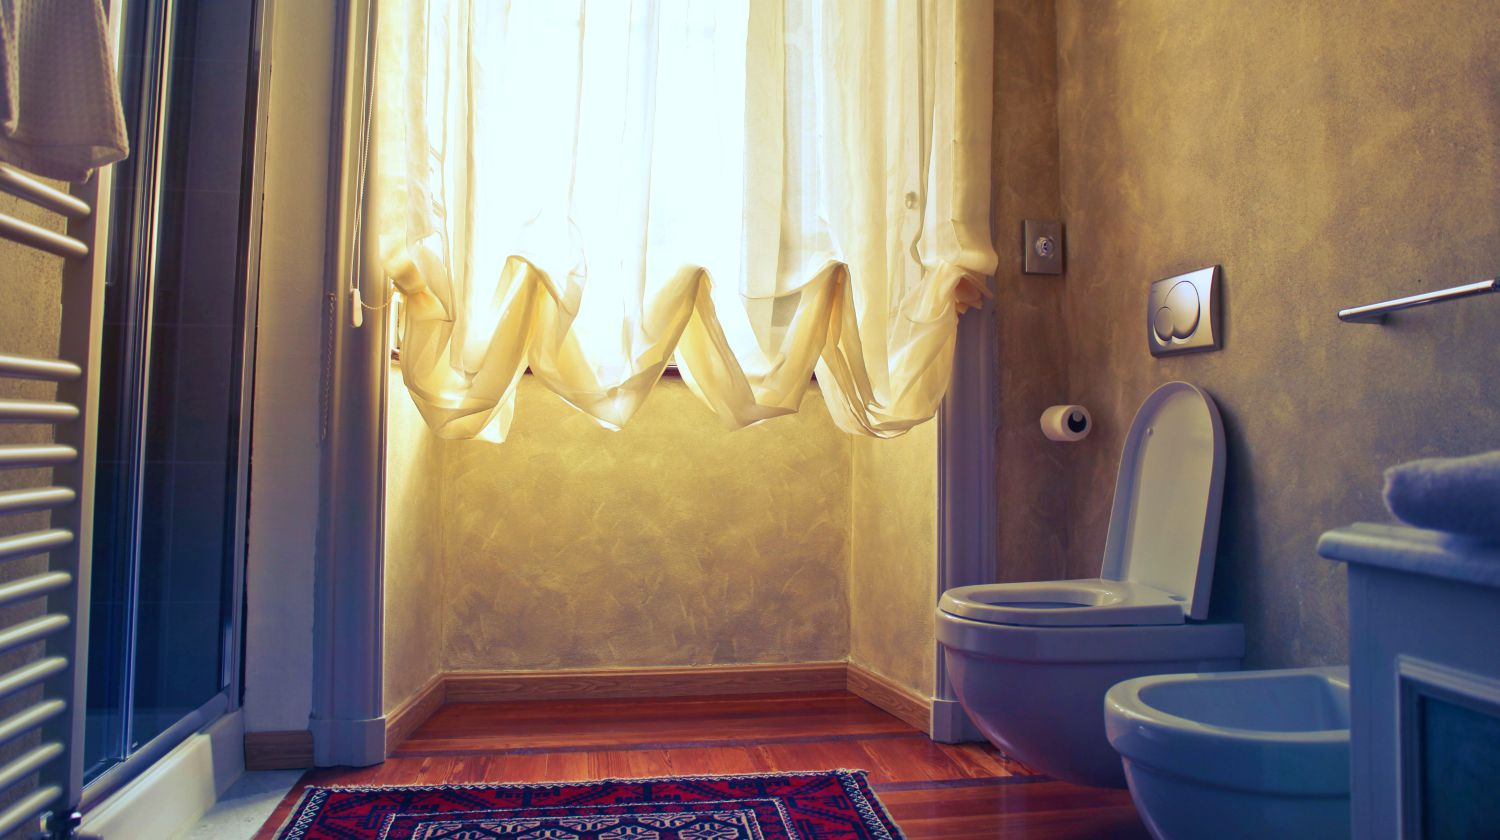 Feature | Toilet Bowl Bathroom | Bathroom Decorating Ideas On A Budget